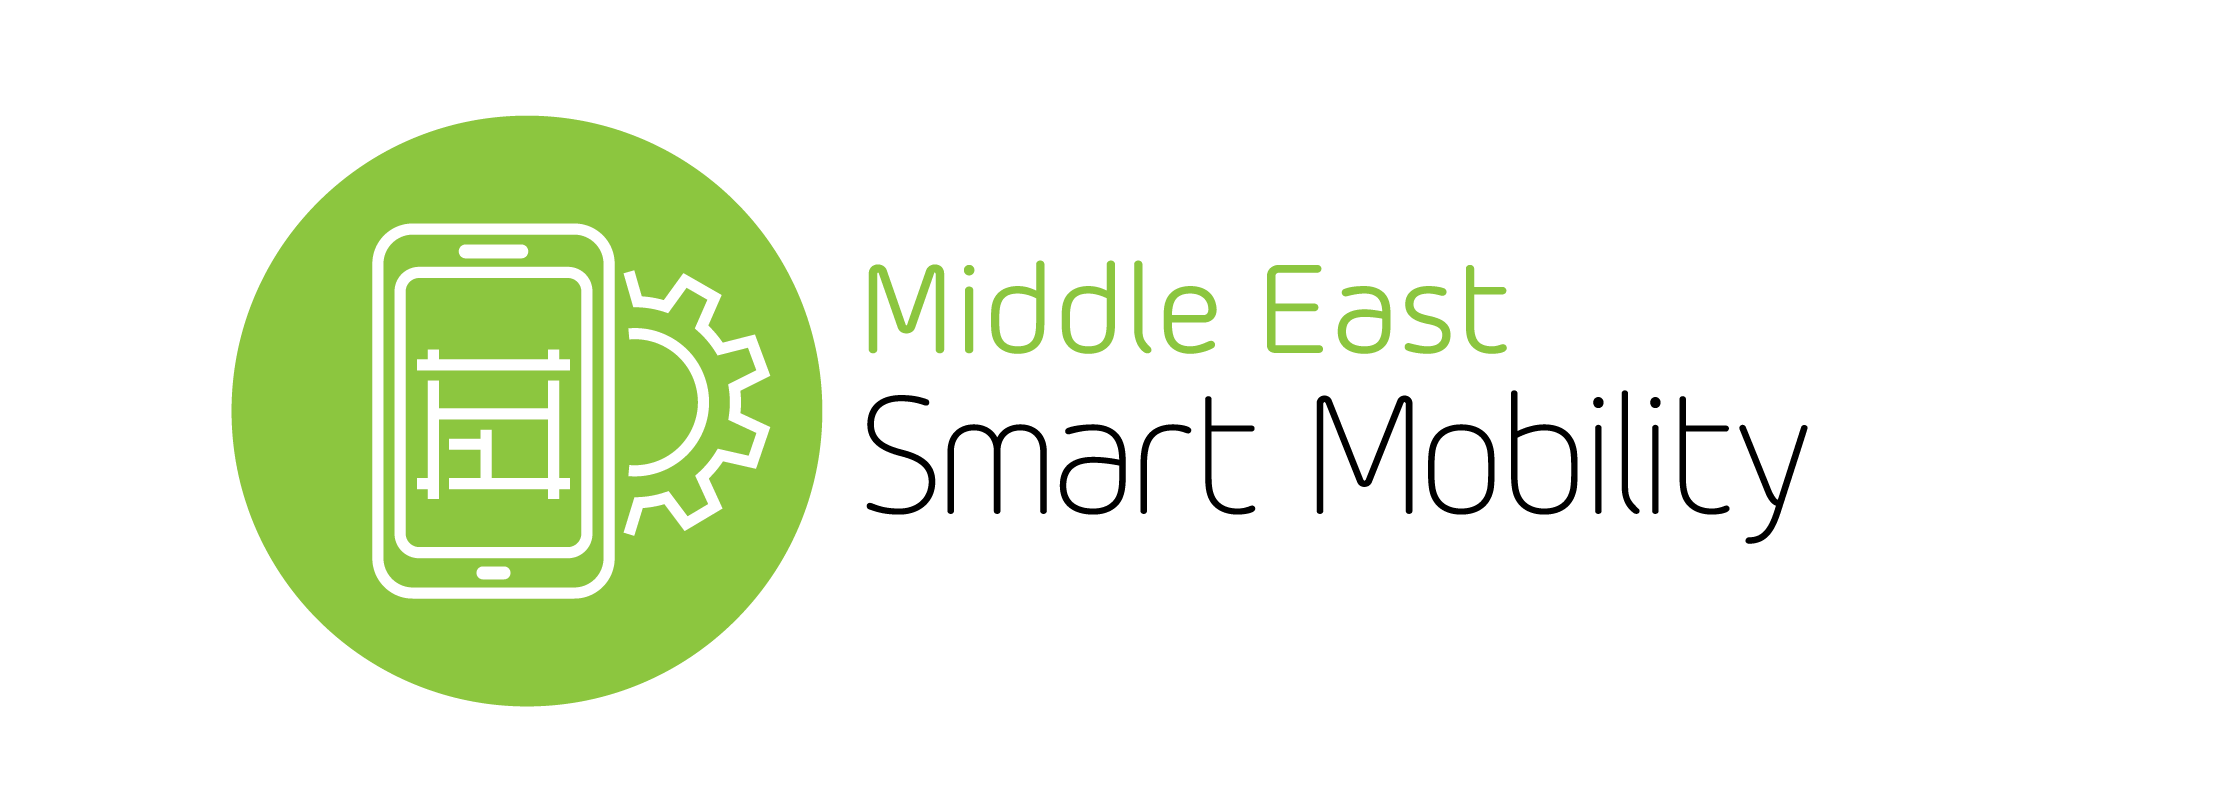 middle-east-smart-mobility-logo